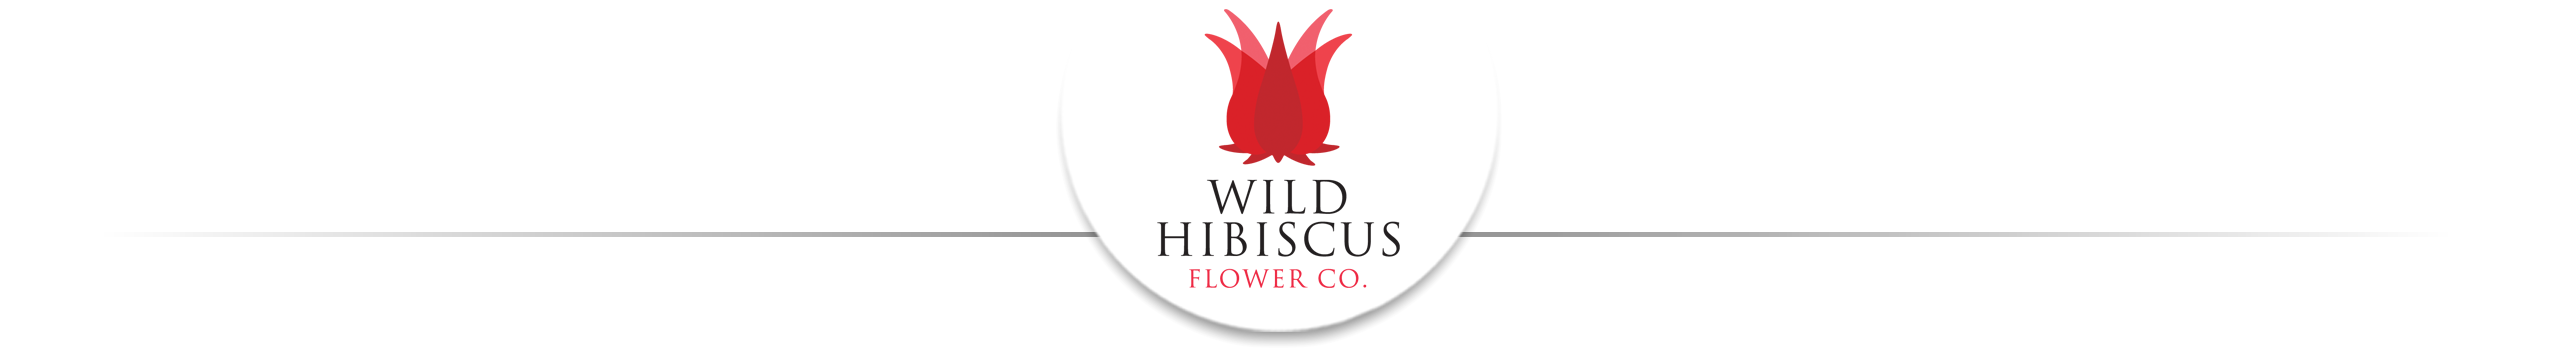 Wild Hibiscus Flowers In Syrup Wild Hibiscus Flower Co Edible